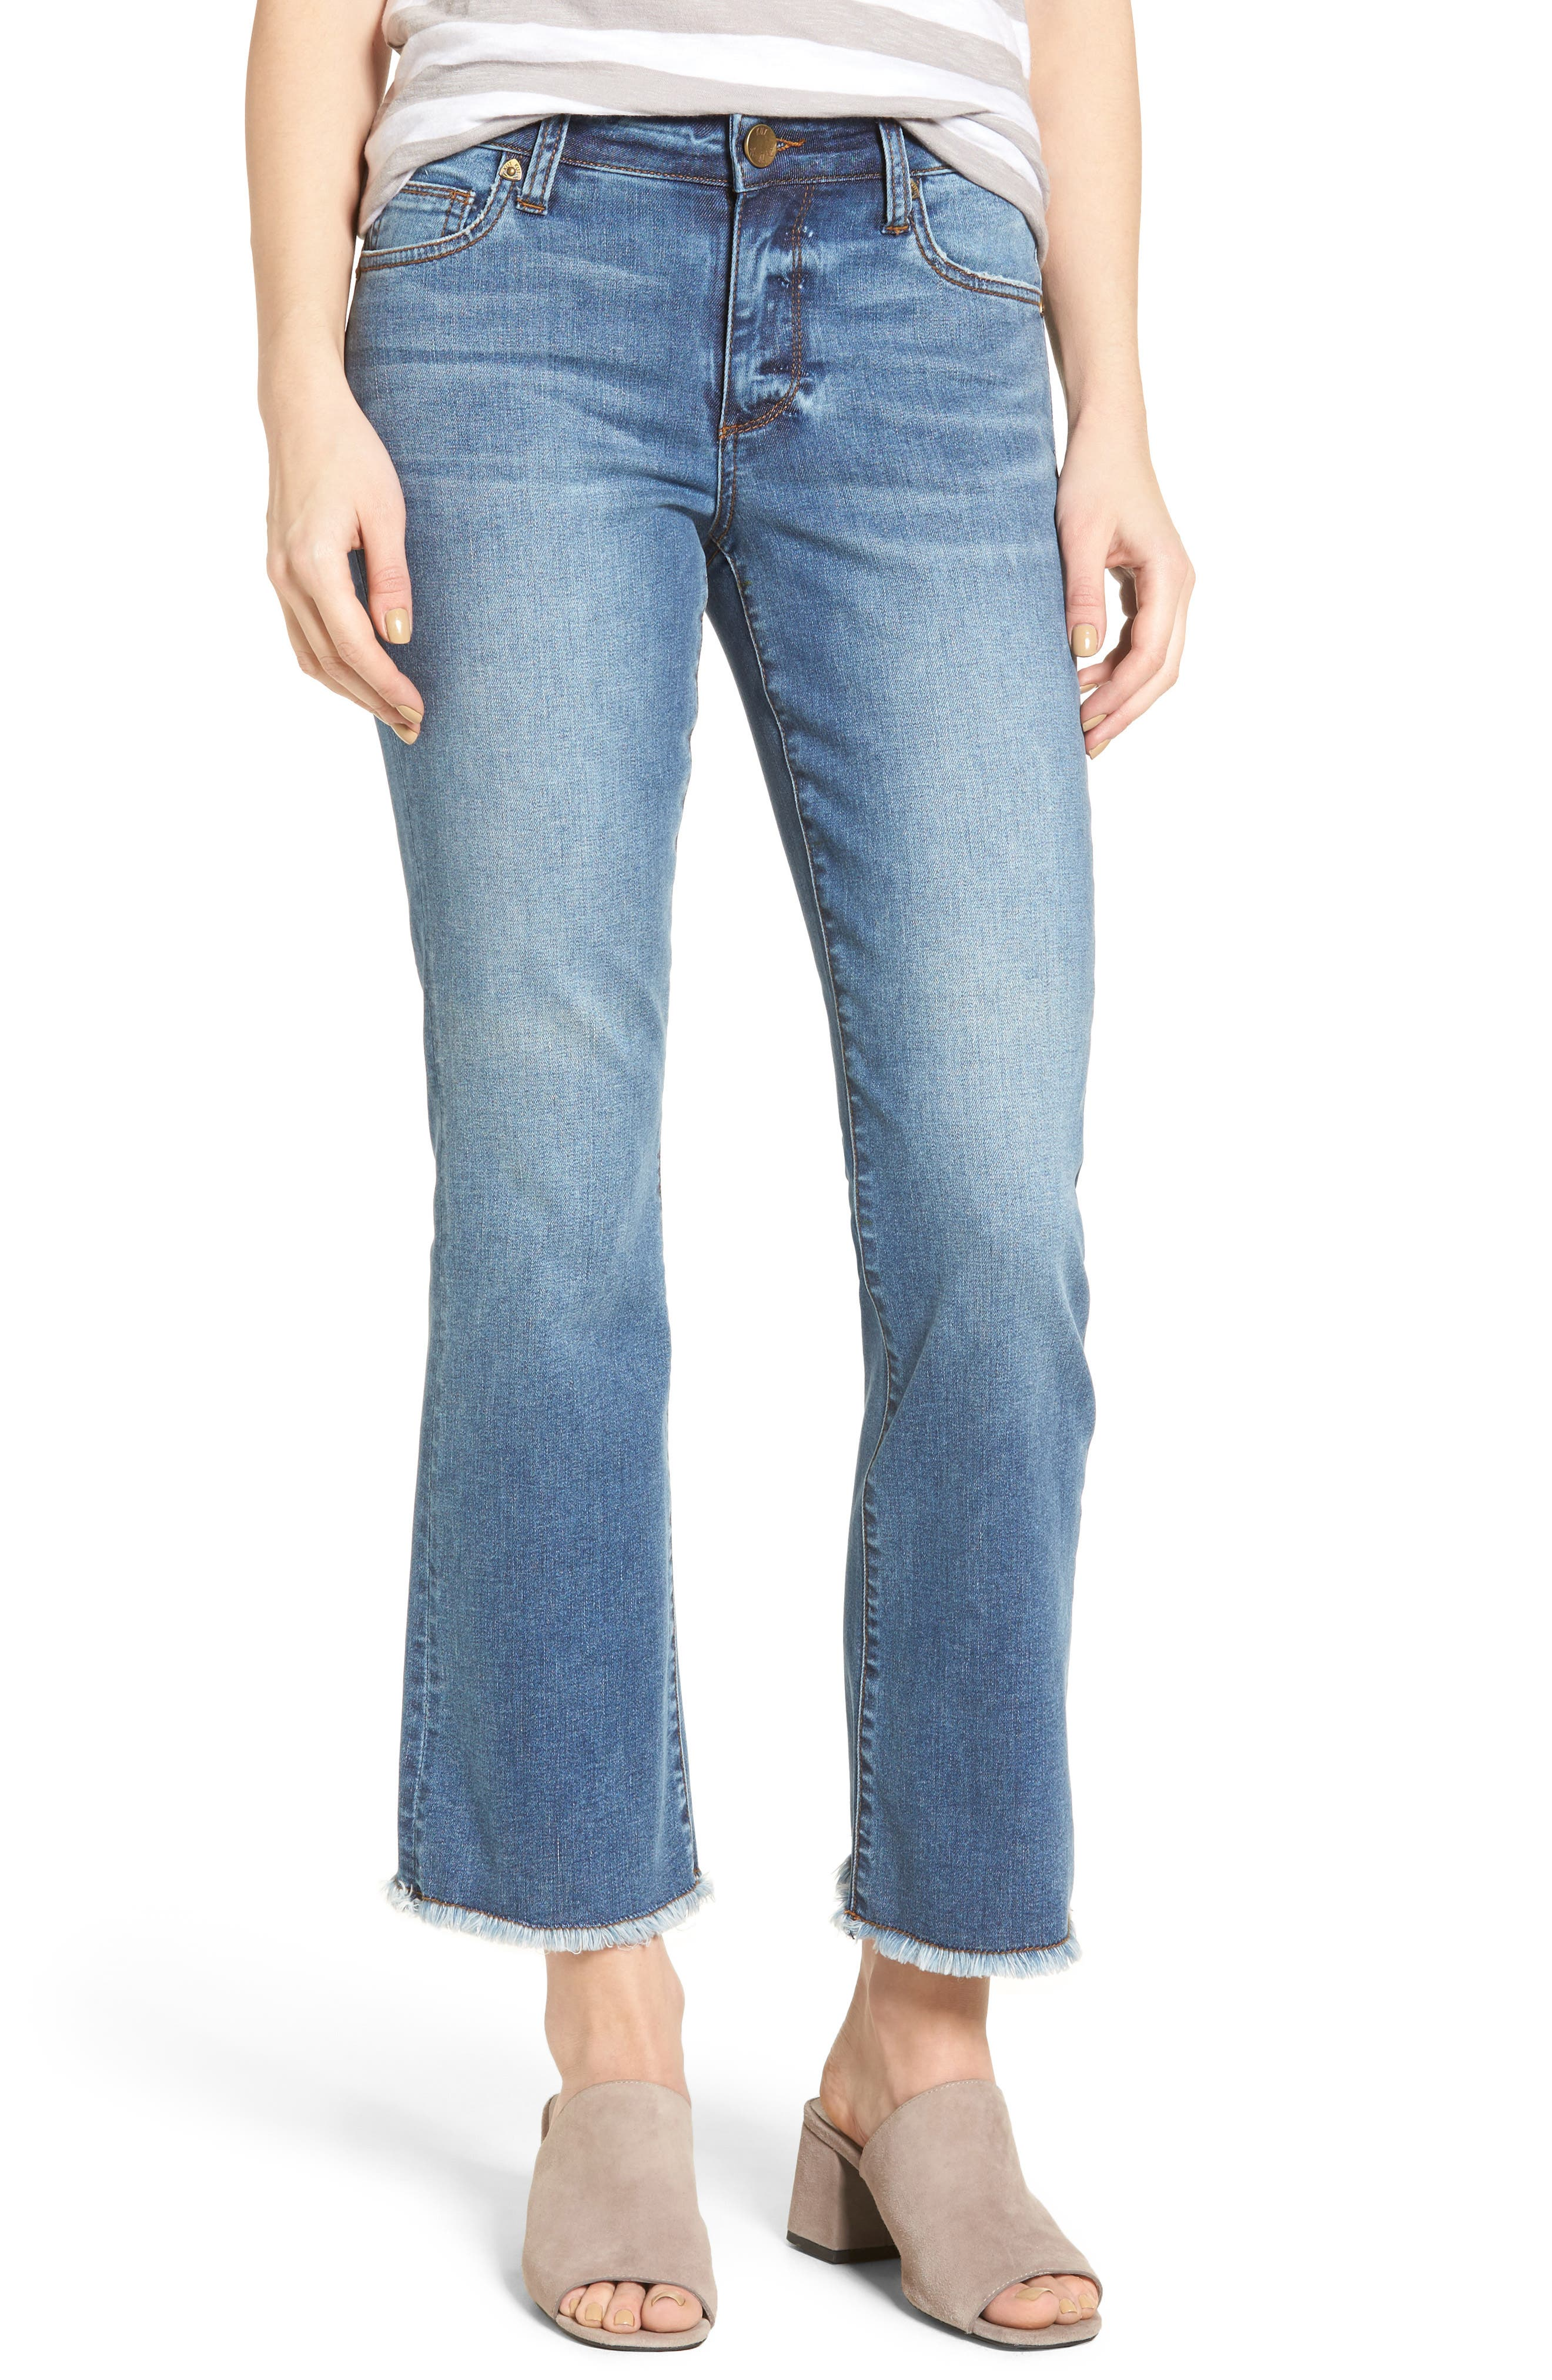 KUT FROM THE KLOTH Crop Flare Jeans